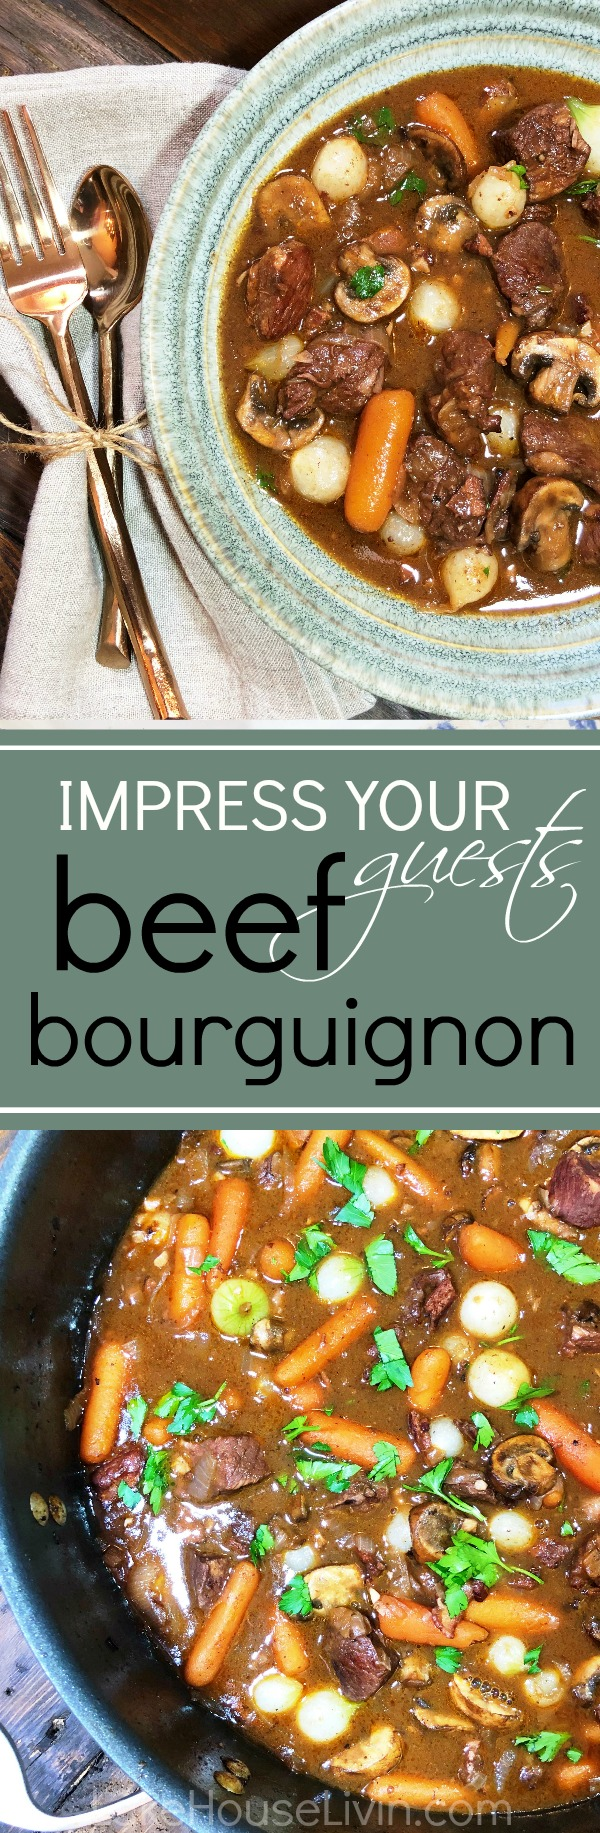 beef bourguinon recipe pin, beef stew recipe, lake house dinners, entertaining recipes, lake house entertaining recipes, impress your guests beef bourguignon